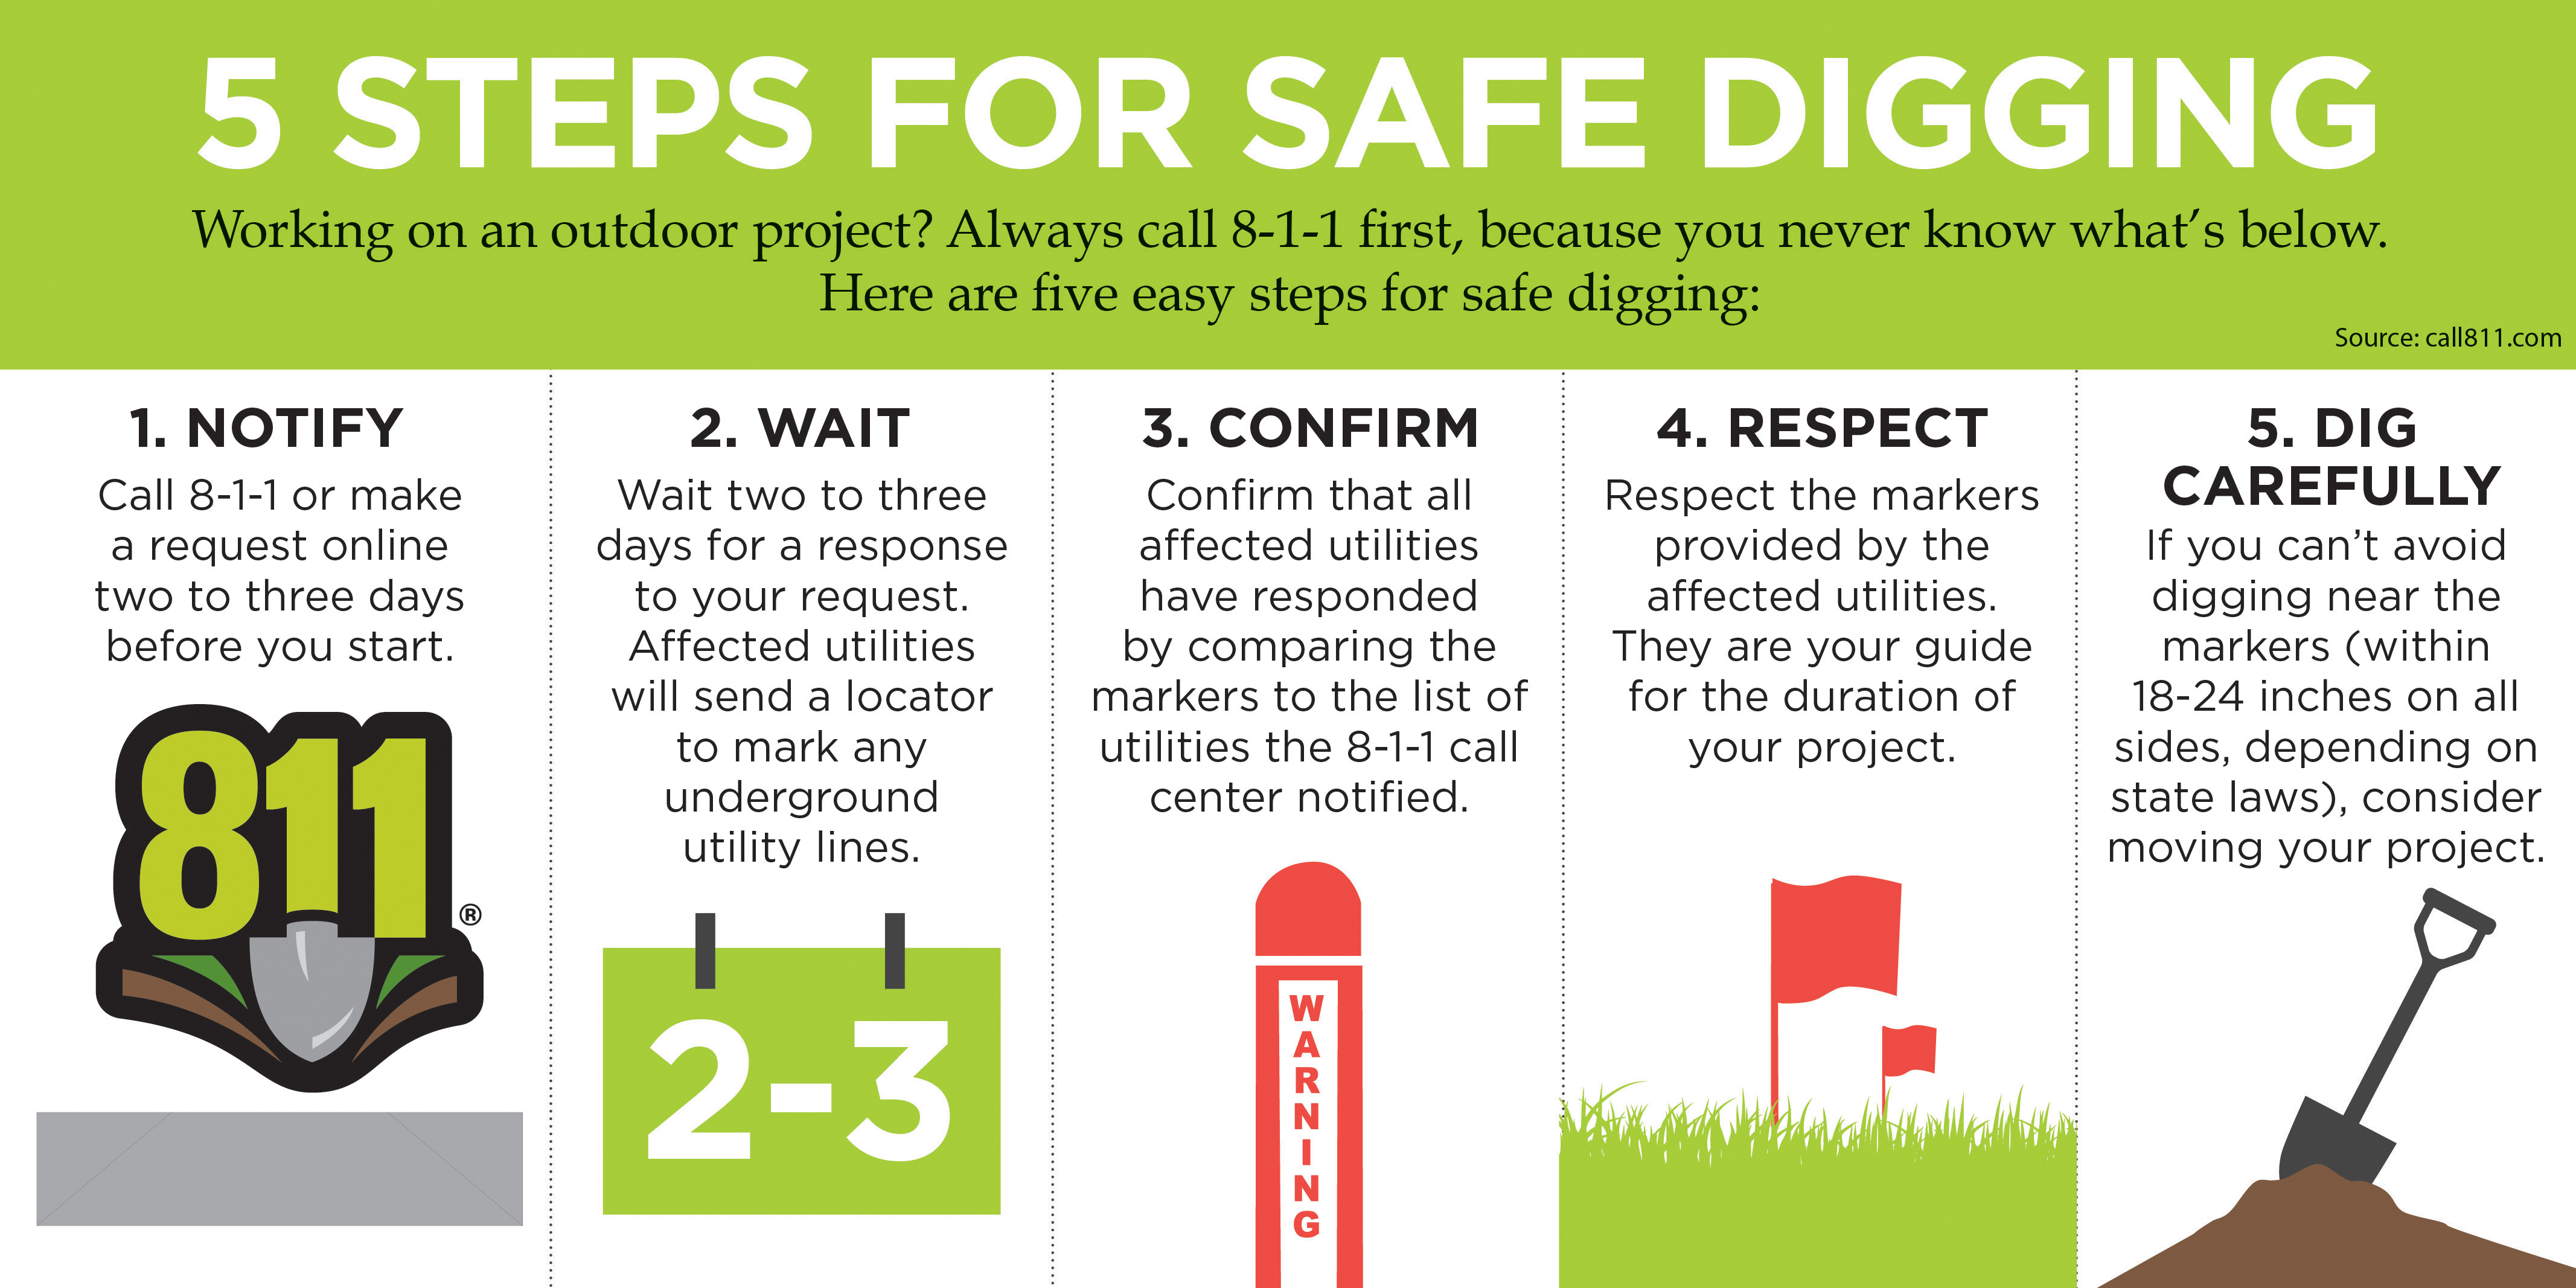 Safe steps for digging